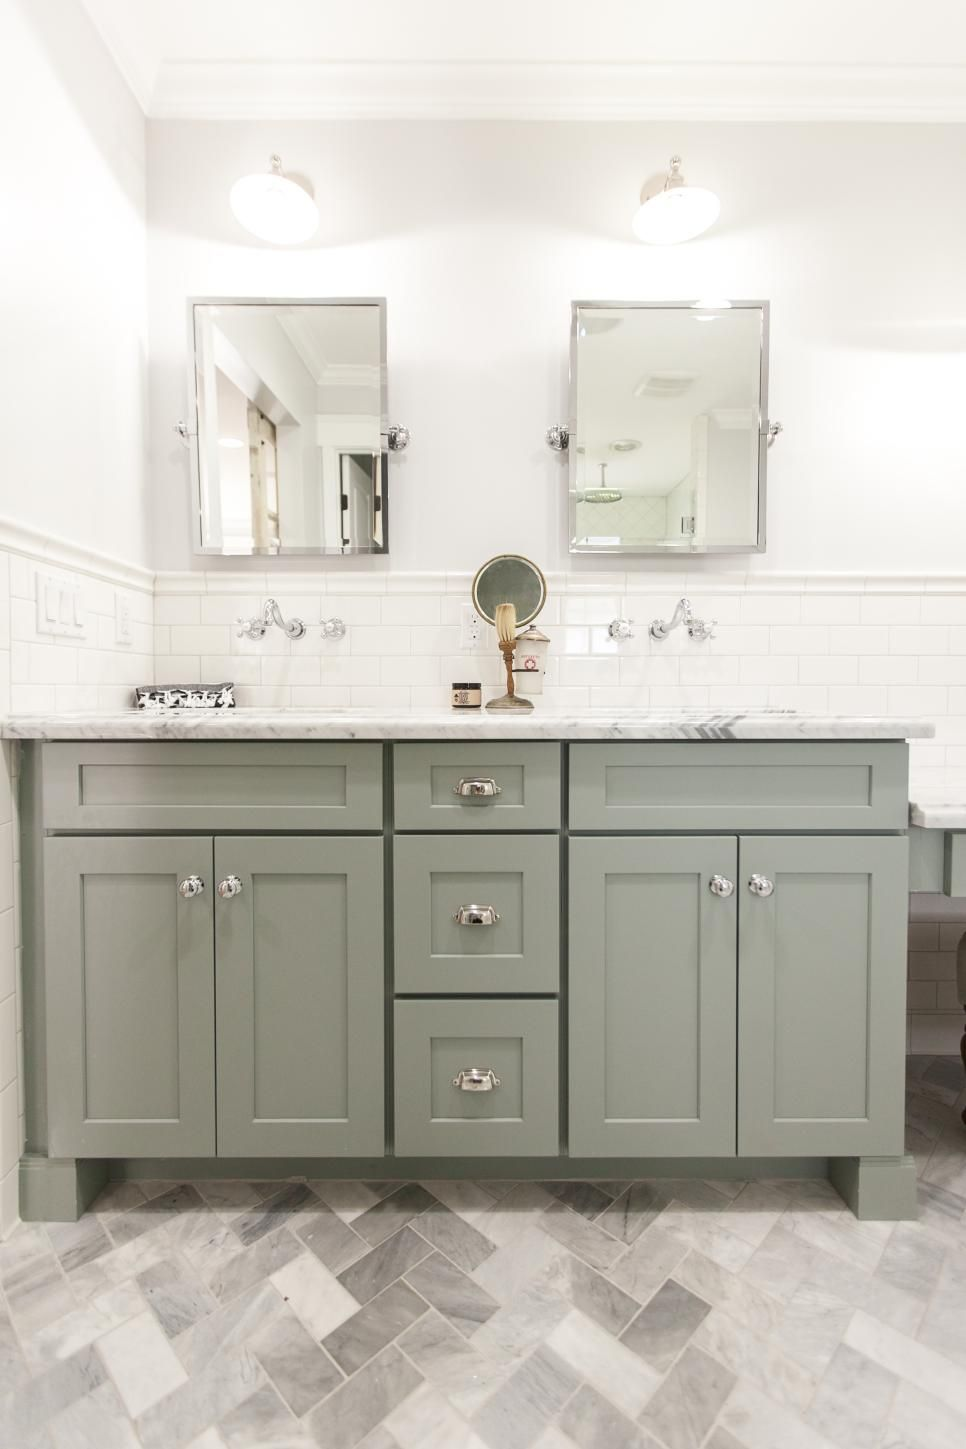 images about bathroom remodel on pinterest gray vanity tile and porcelain floor makeup vanity traditional bathroom bathroom pendant lighting double vanity